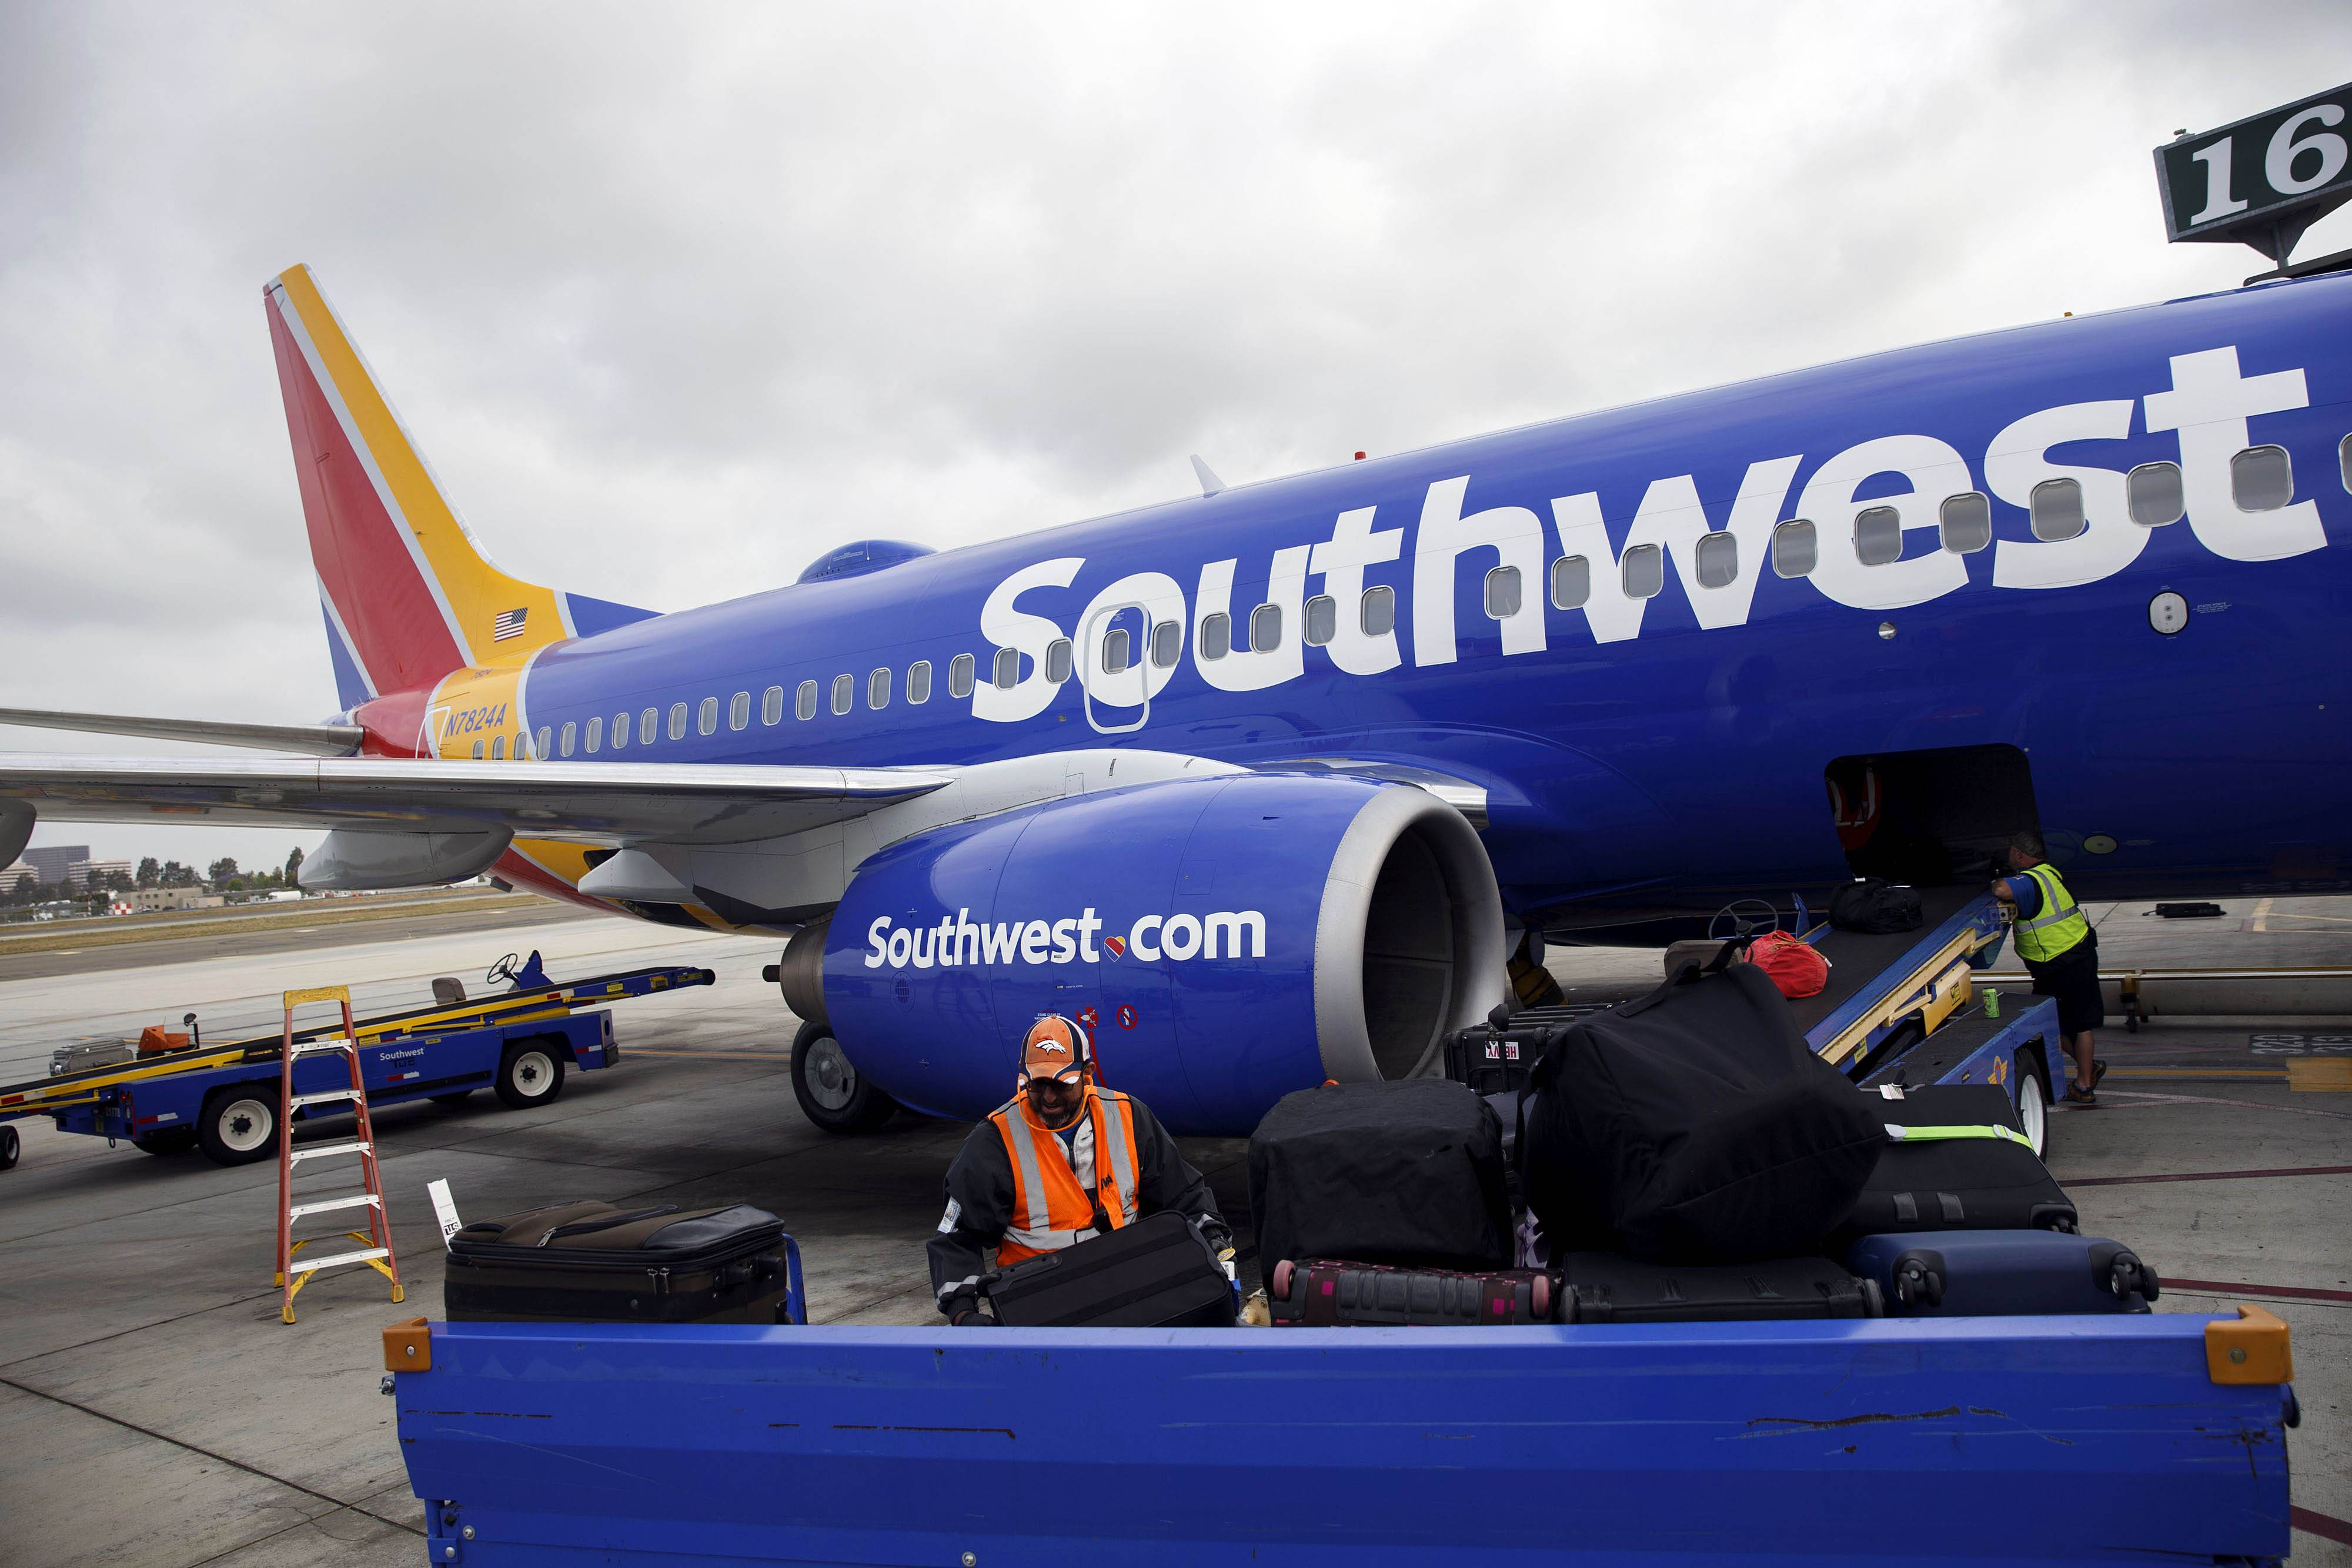 A ground operations employee loads baggage onto a Southwest Airlines Boeing 737.